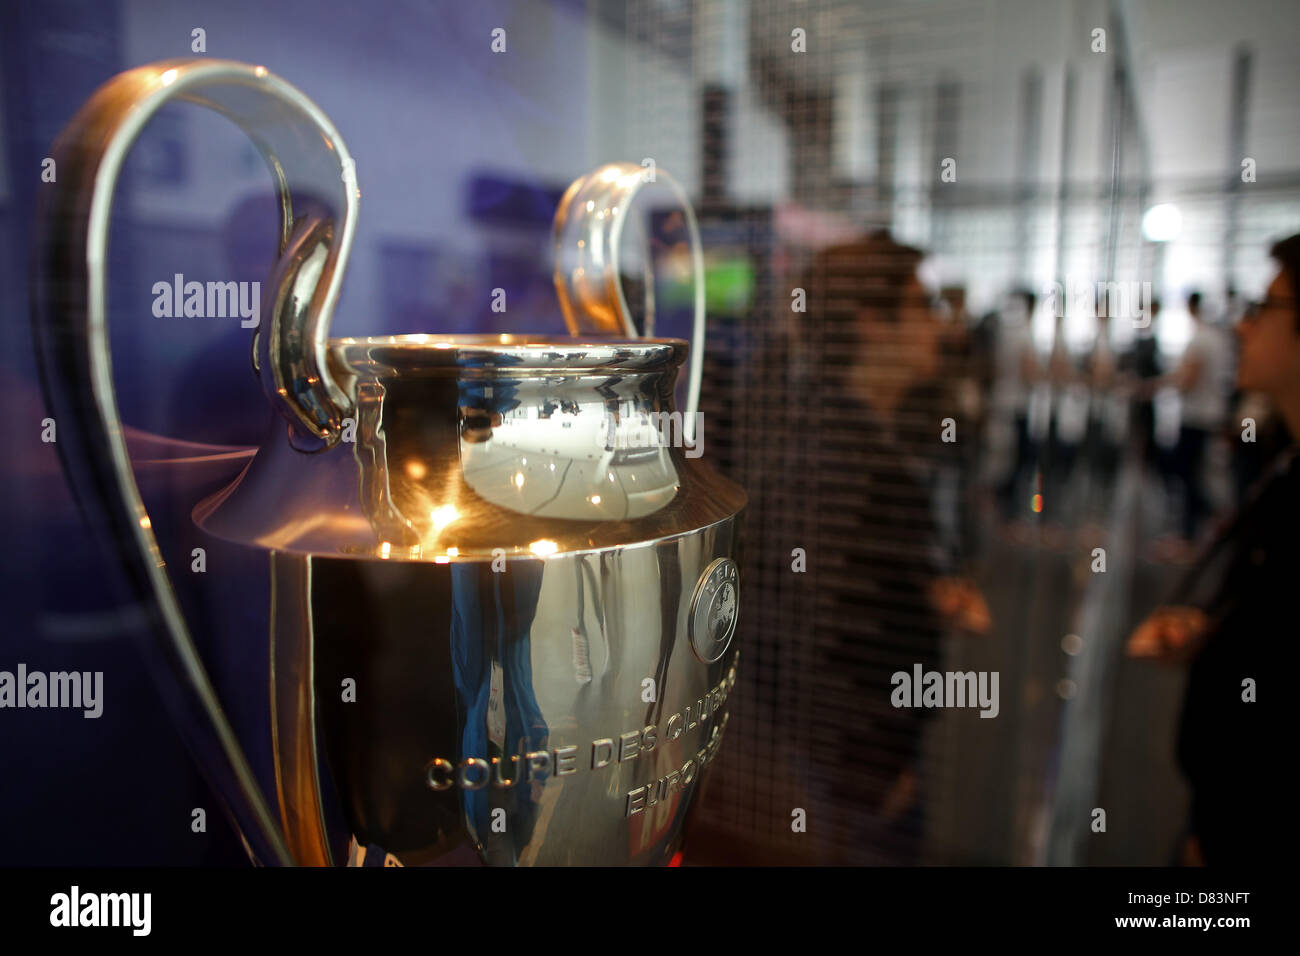 a replica of the uefa champions league trophy is featured at the stock photo alamy https www alamy com stock photo a replica of the uefa champions league trophy is featured at the wembley 56631116 html